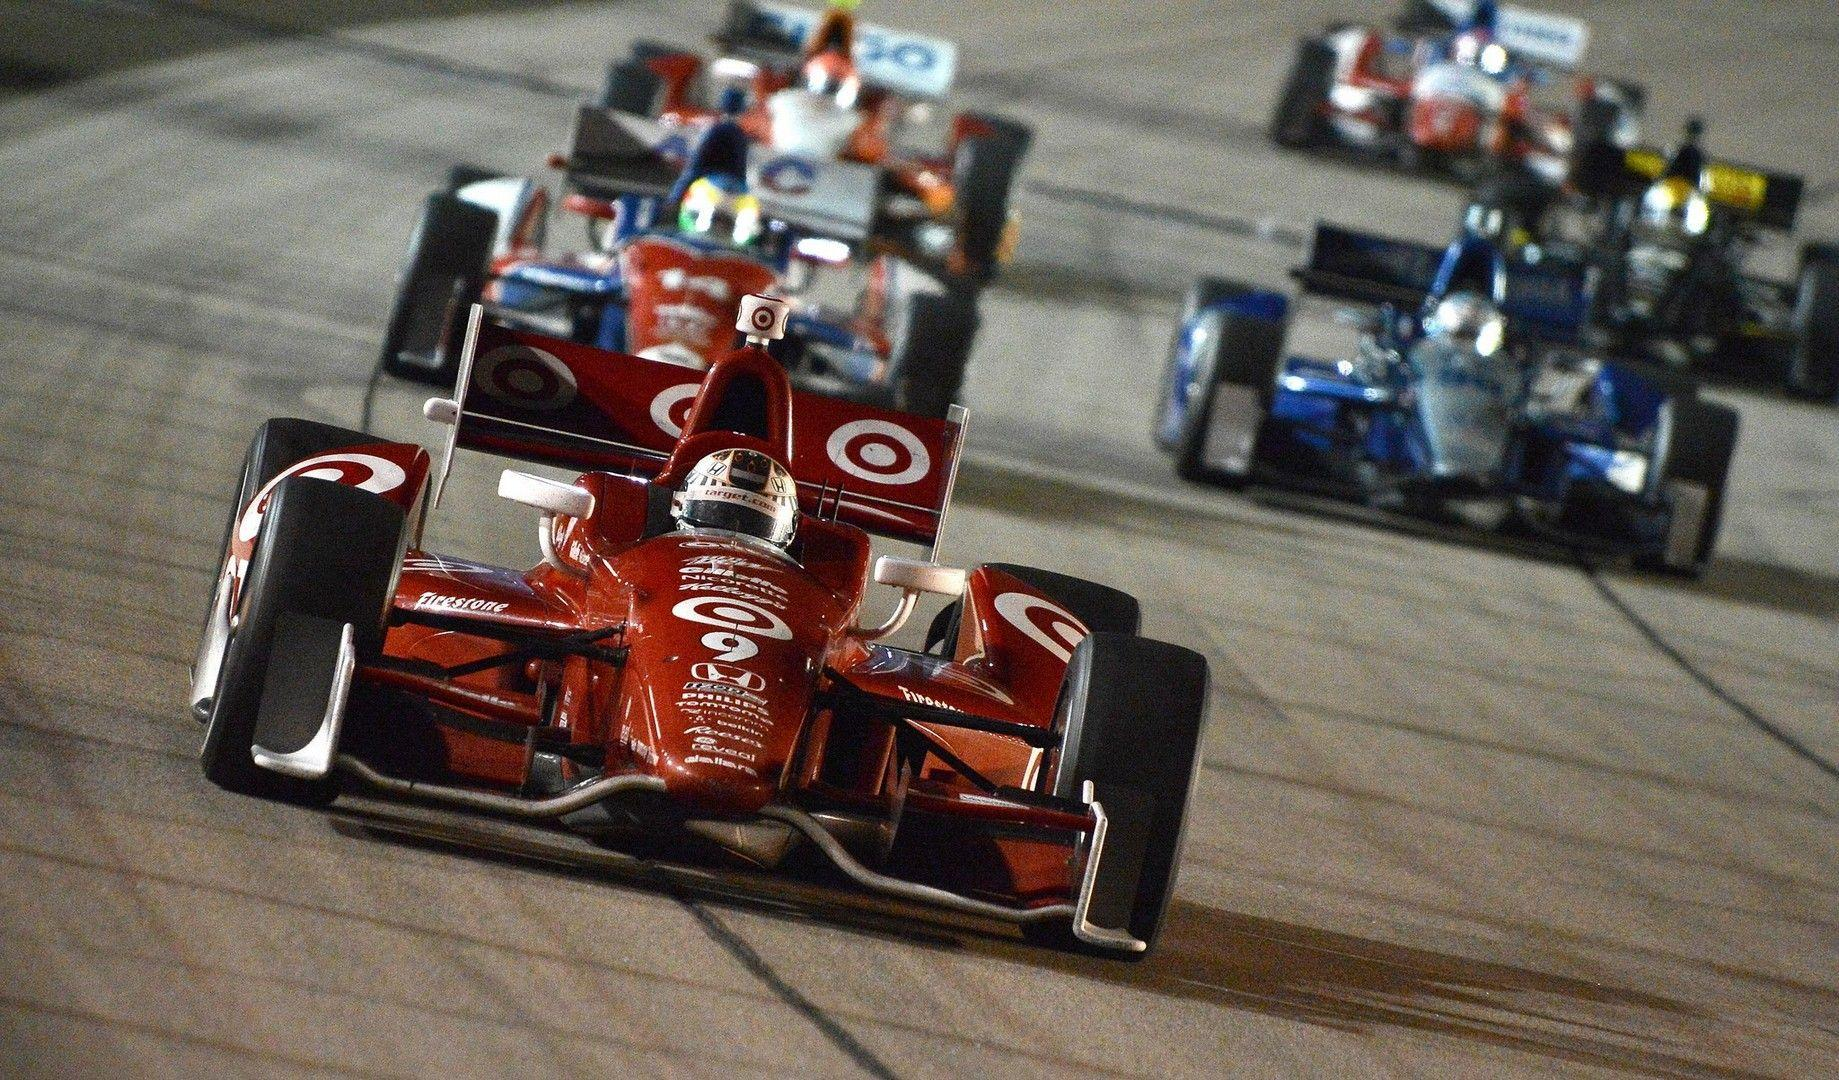 indycar wallpapers free | IndyCar wallpaper | Pinterest | Cars